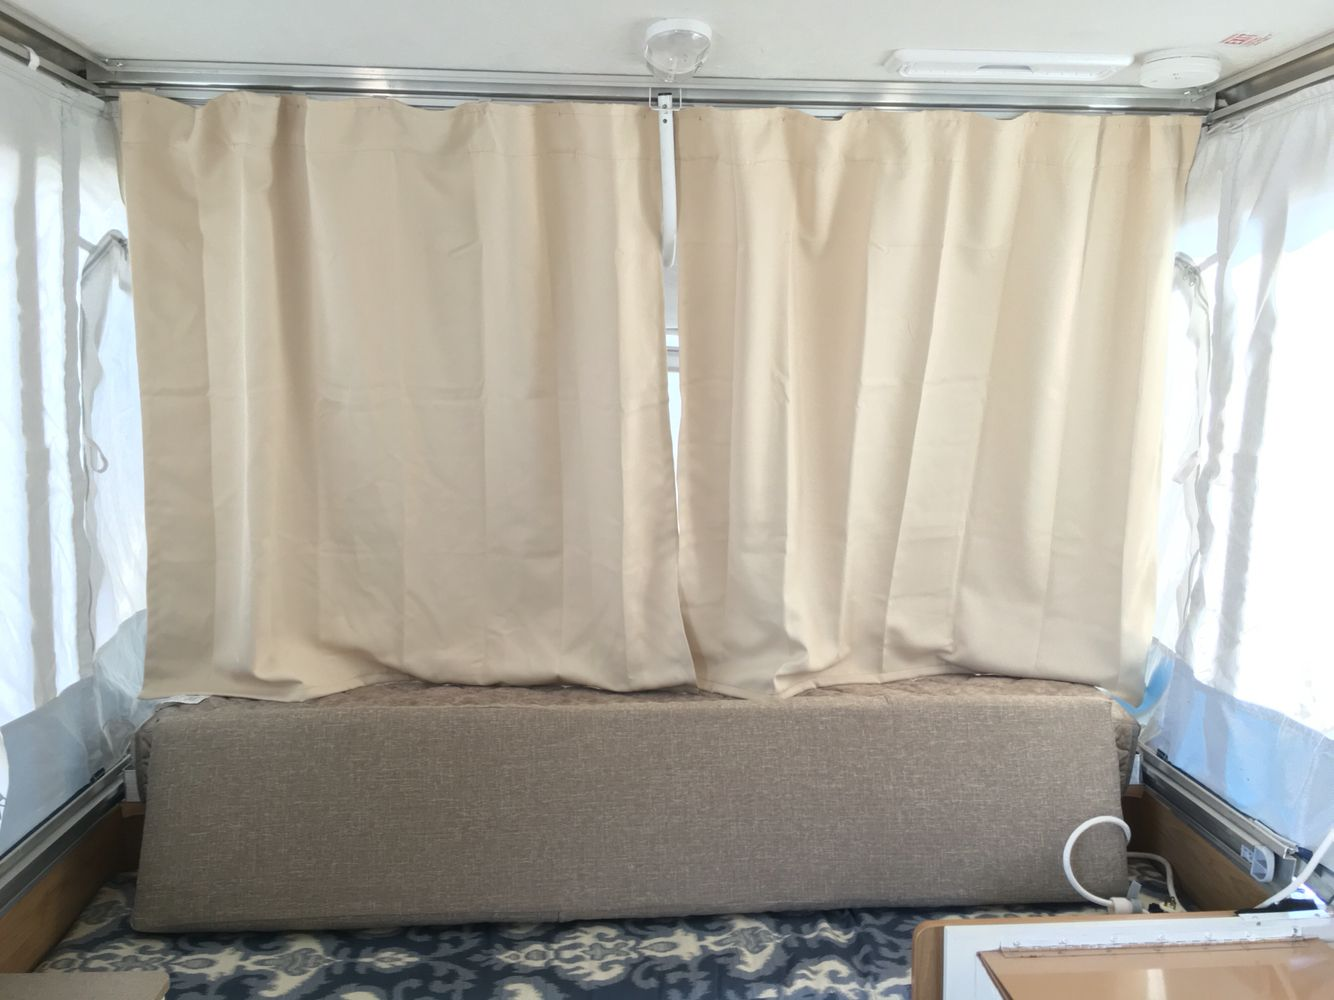 New Curtains For The Pop Up Camper Repurposed Premade Blackout